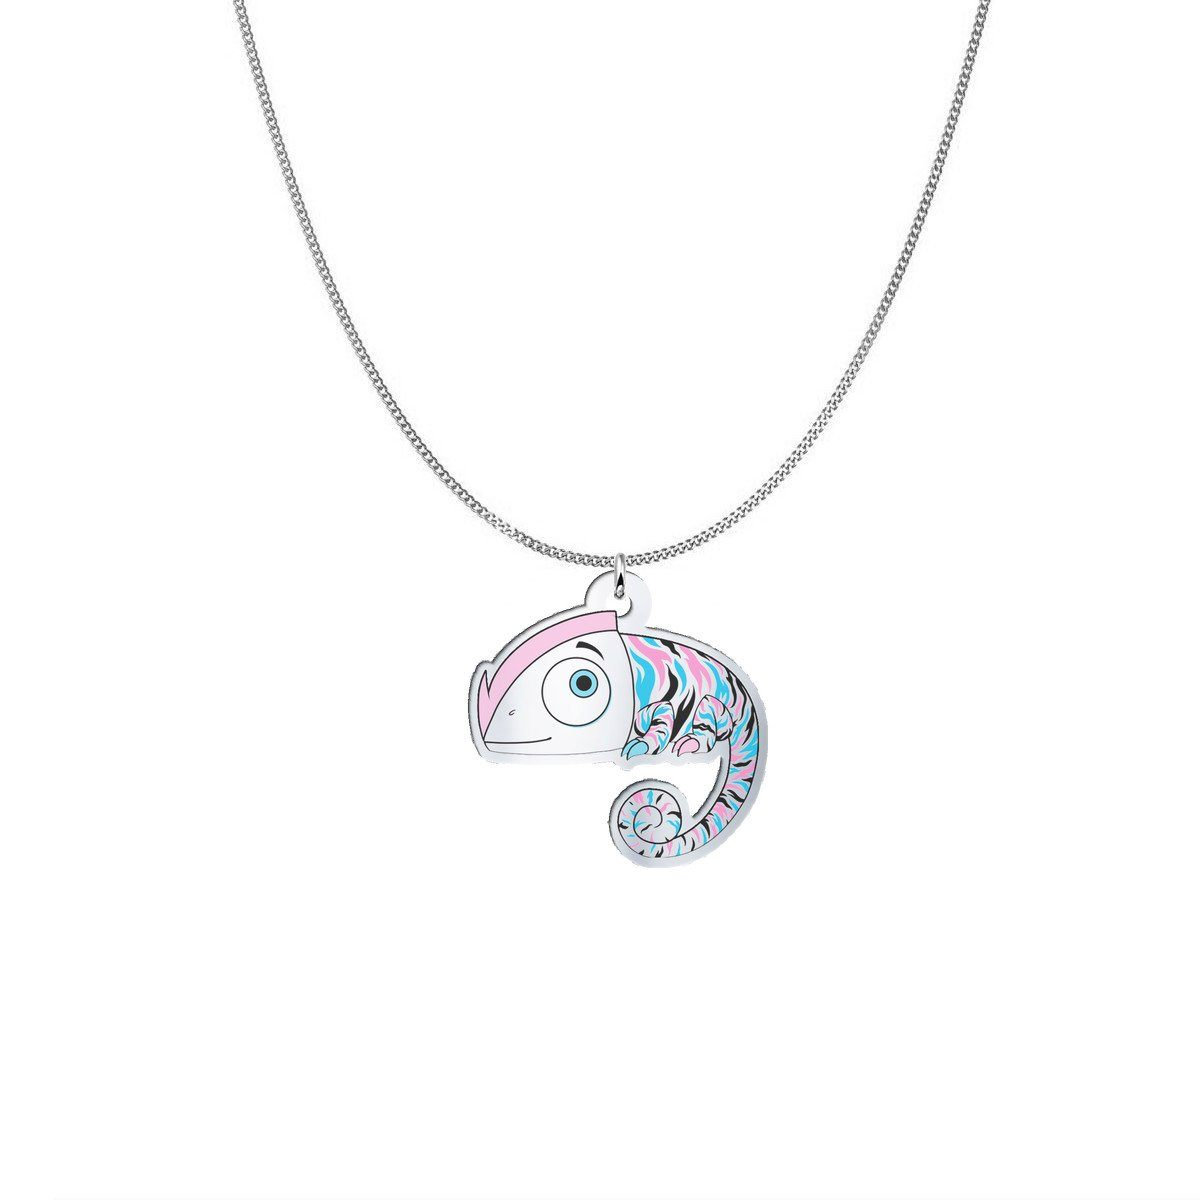 Pendant - Agnes The Undiagnosed Monster Silver Necklace